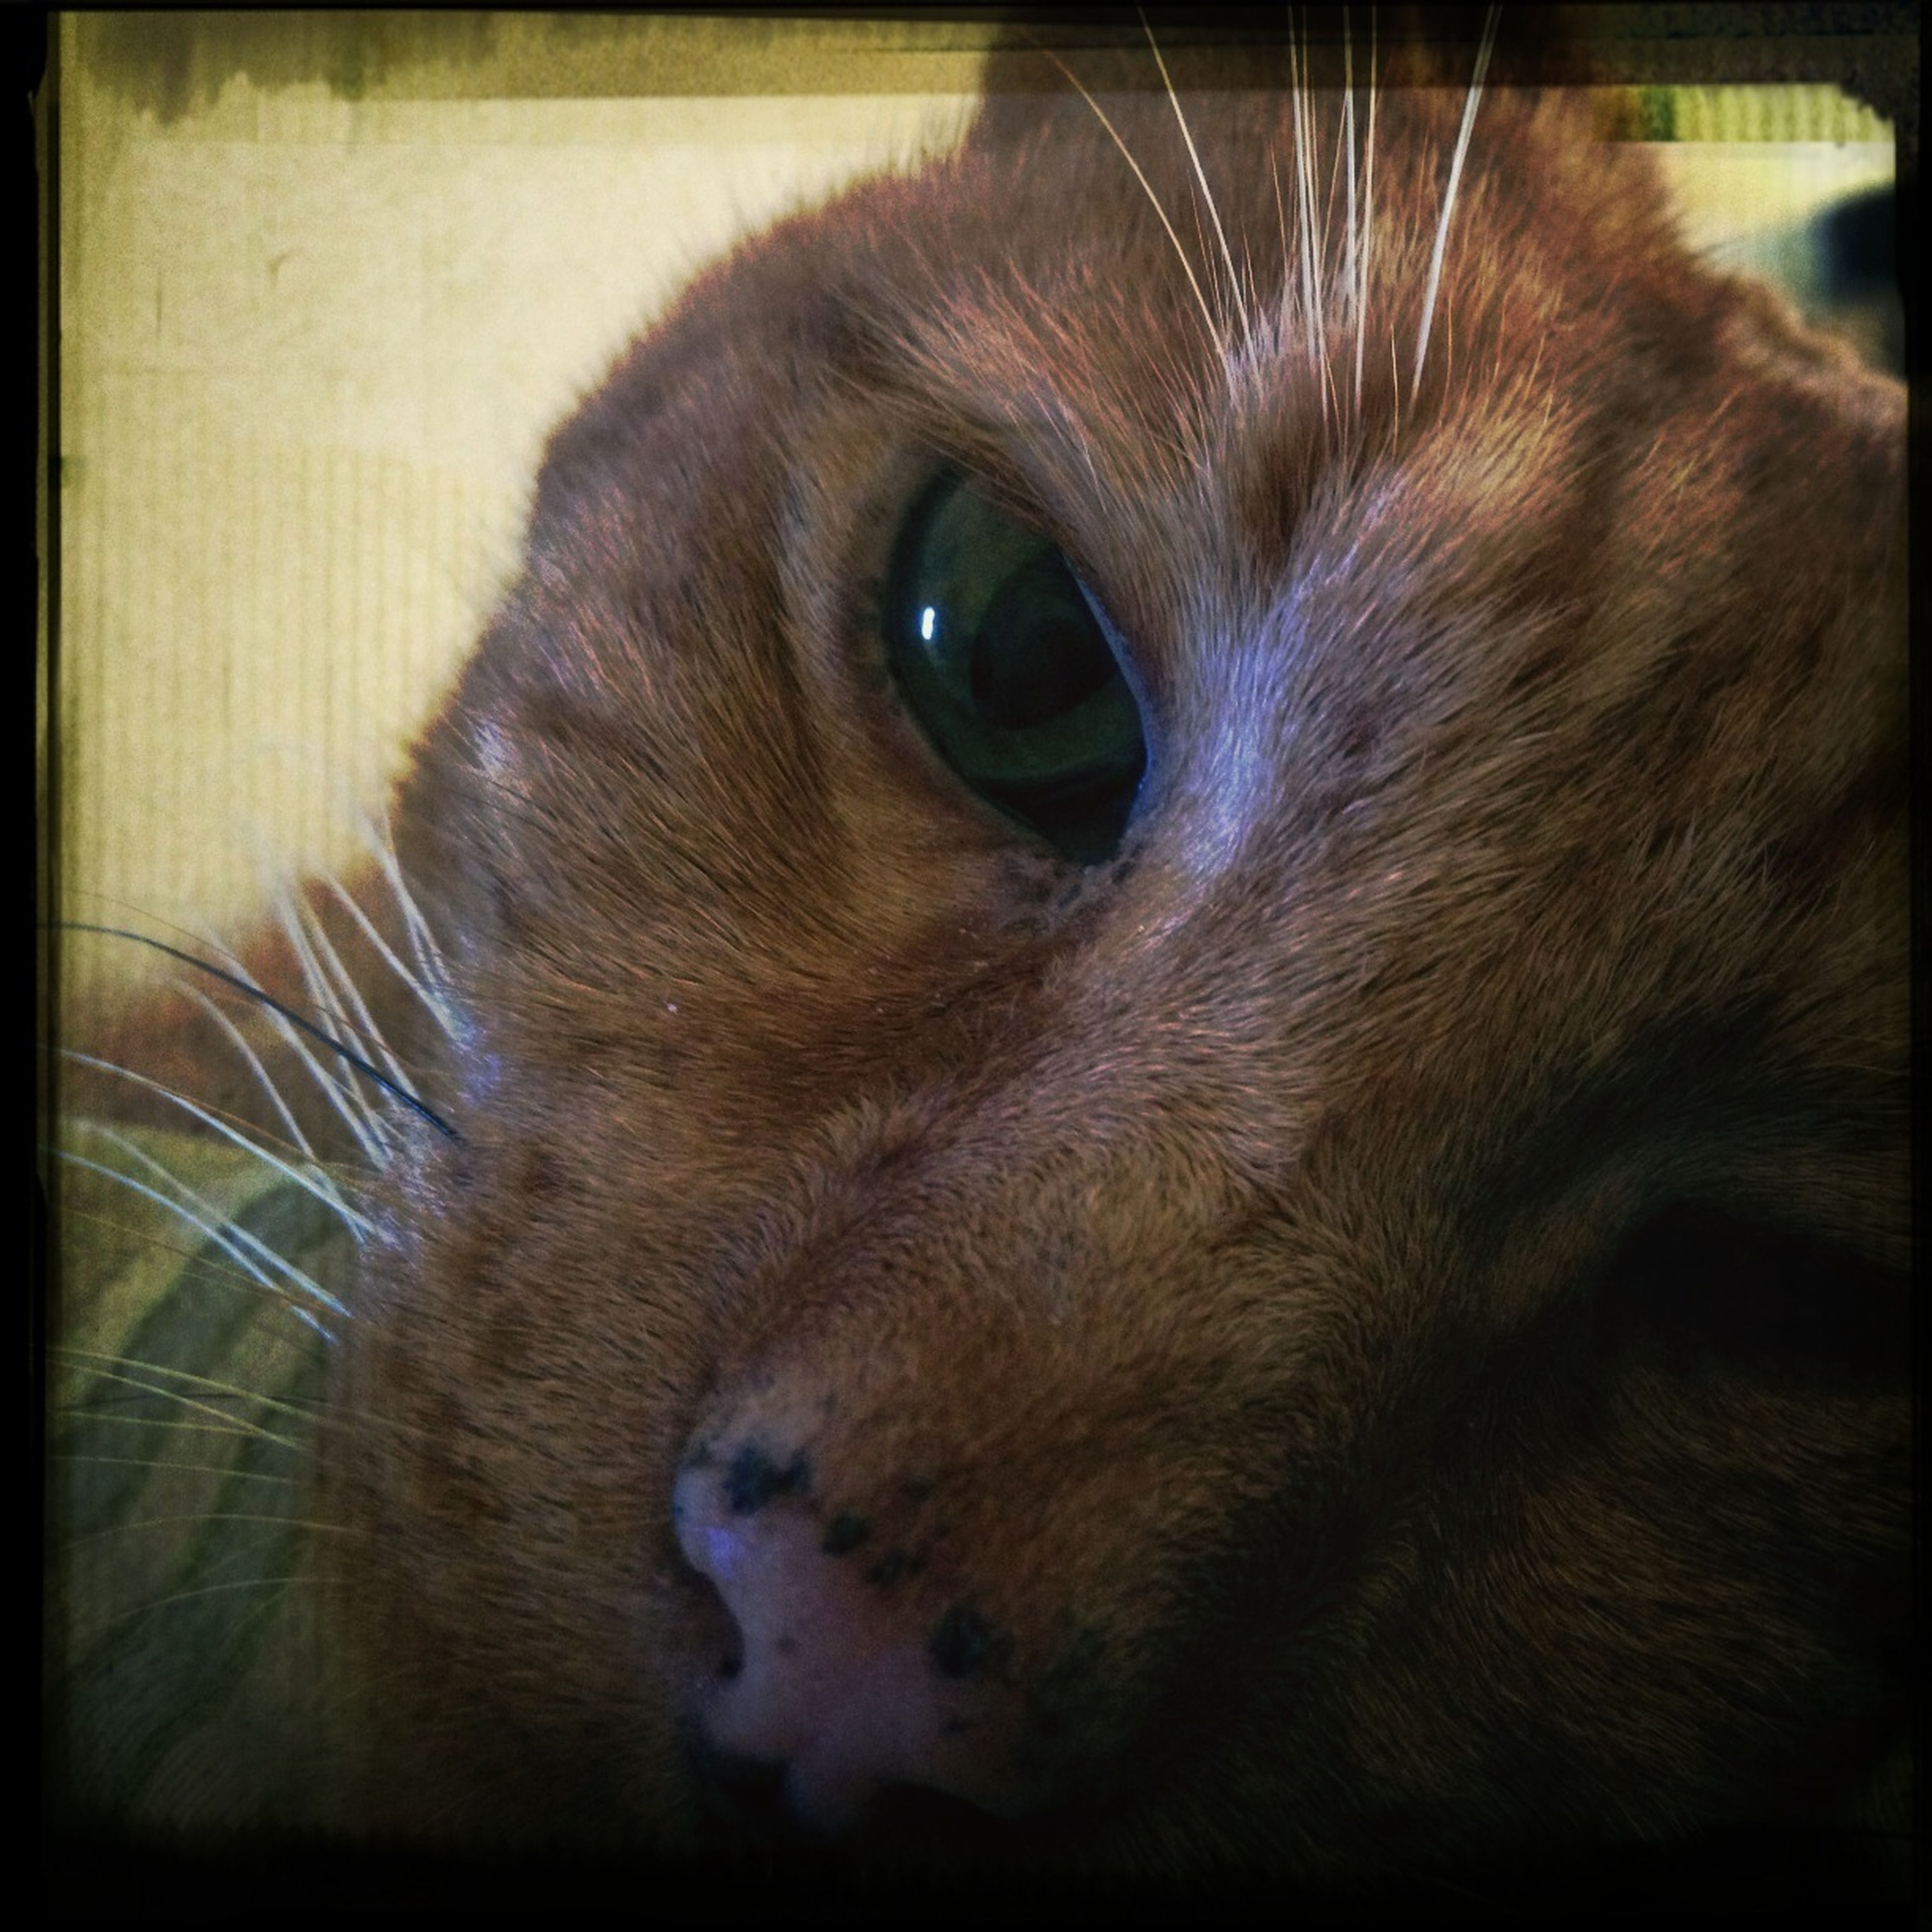 one animal, animal themes, pets, domestic animals, domestic cat, mammal, cat, animal head, feline, transfer print, whisker, close-up, indoors, animal body part, auto post production filter, animal eye, looking away, animal, zoology, alertness